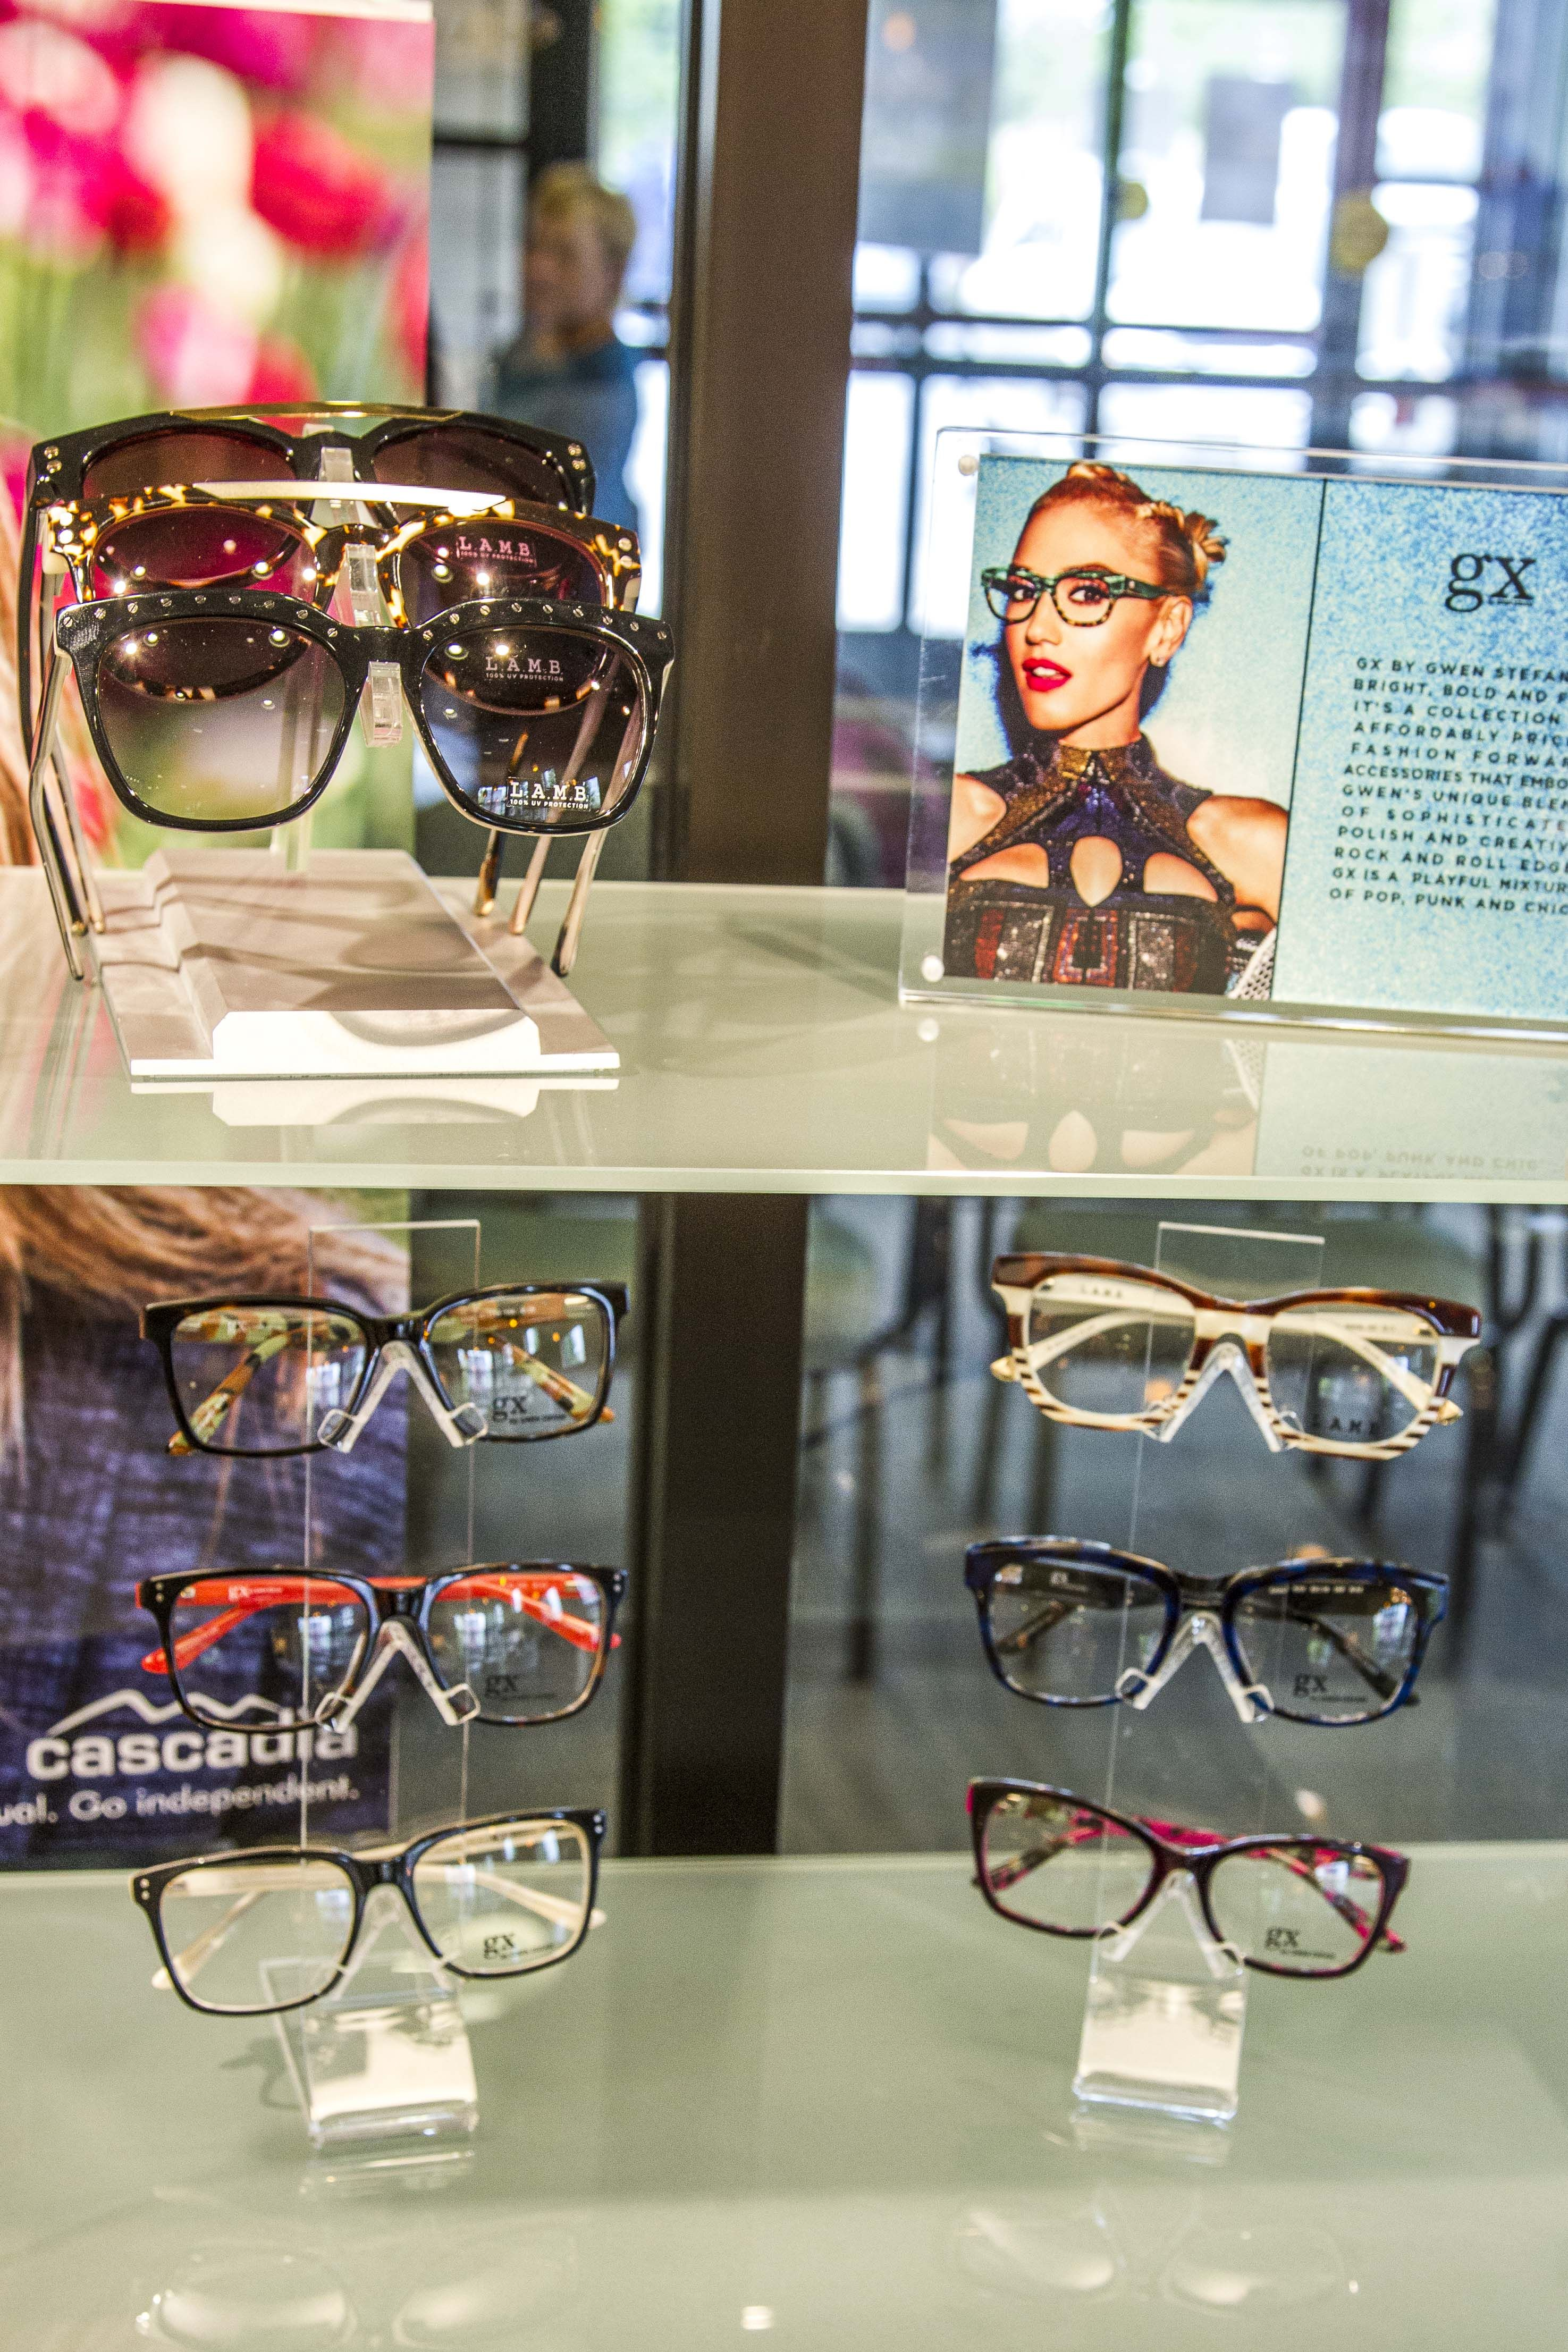 520492cf4e2e Cascadia Eye's online eyewear store (and our Mt. Vernon optical shop) now  features Gwen Stefani's frames and sunglasses - L.A.M.B. and GX brands!